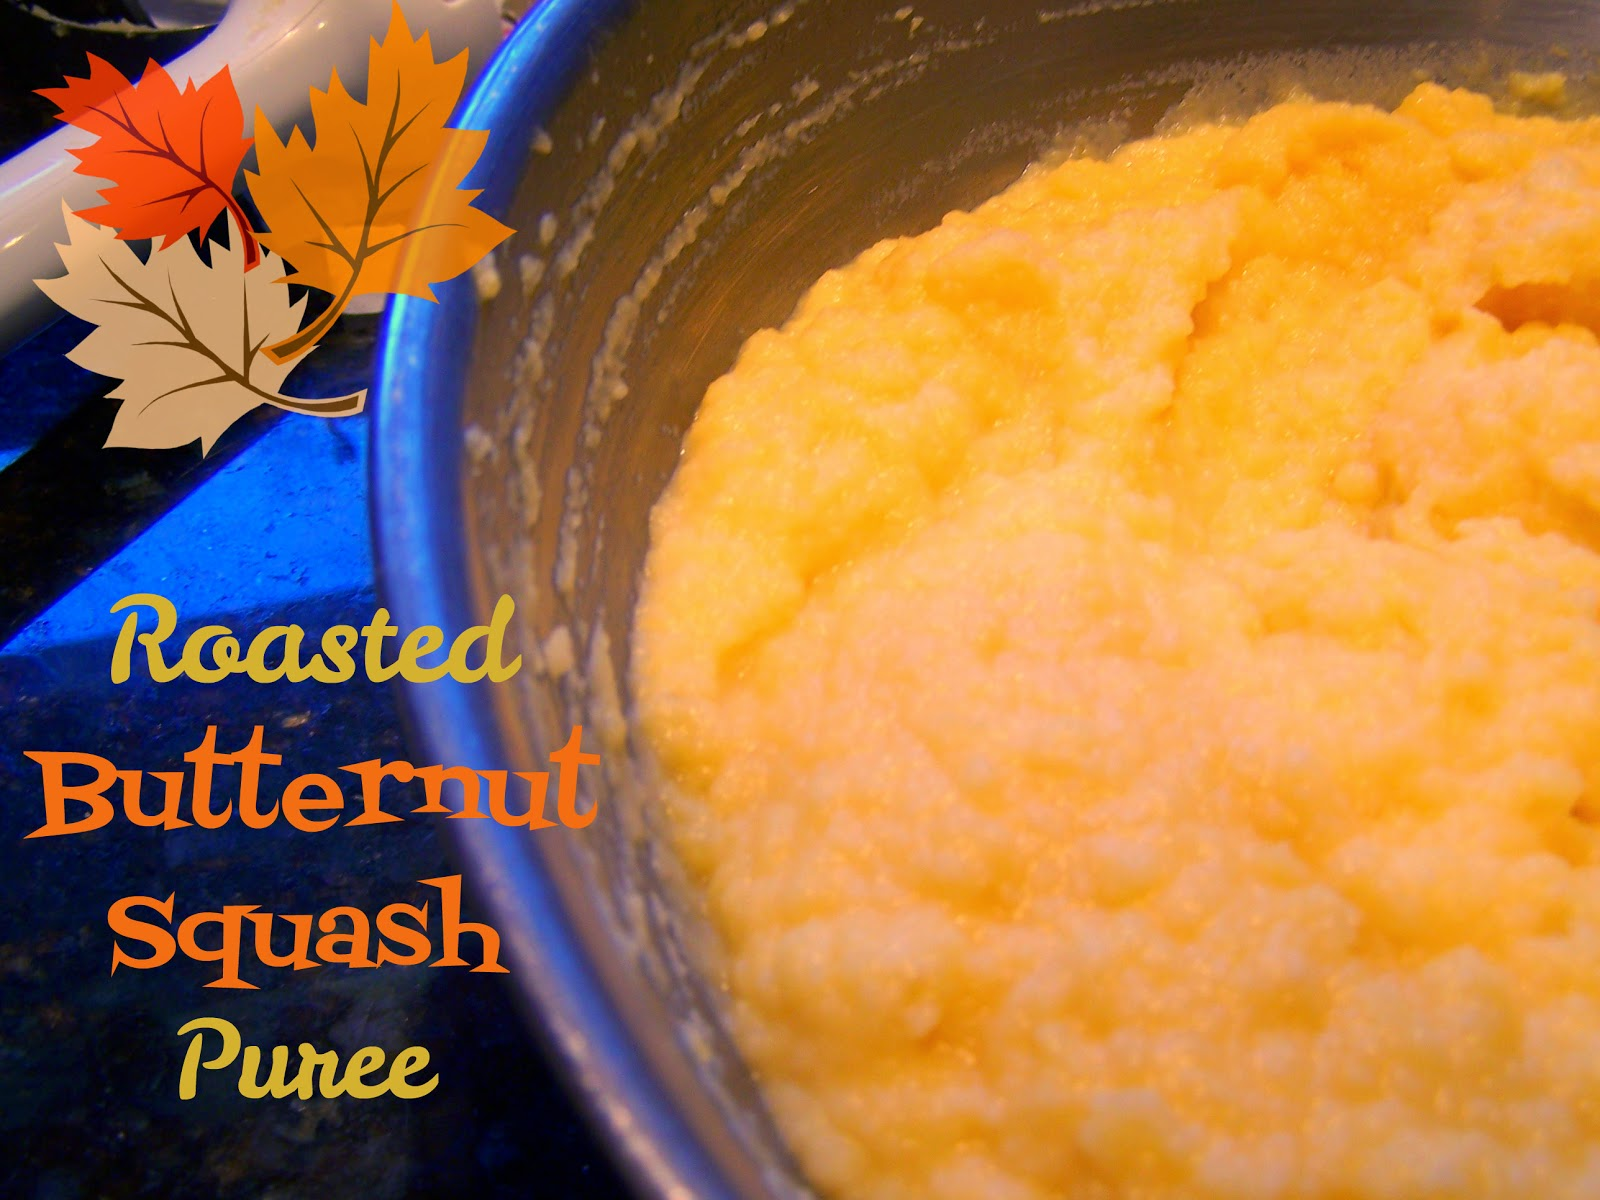 ... Ahead... Take A Bite!: Roasted Butternut Squash Puree (Holiday Sides